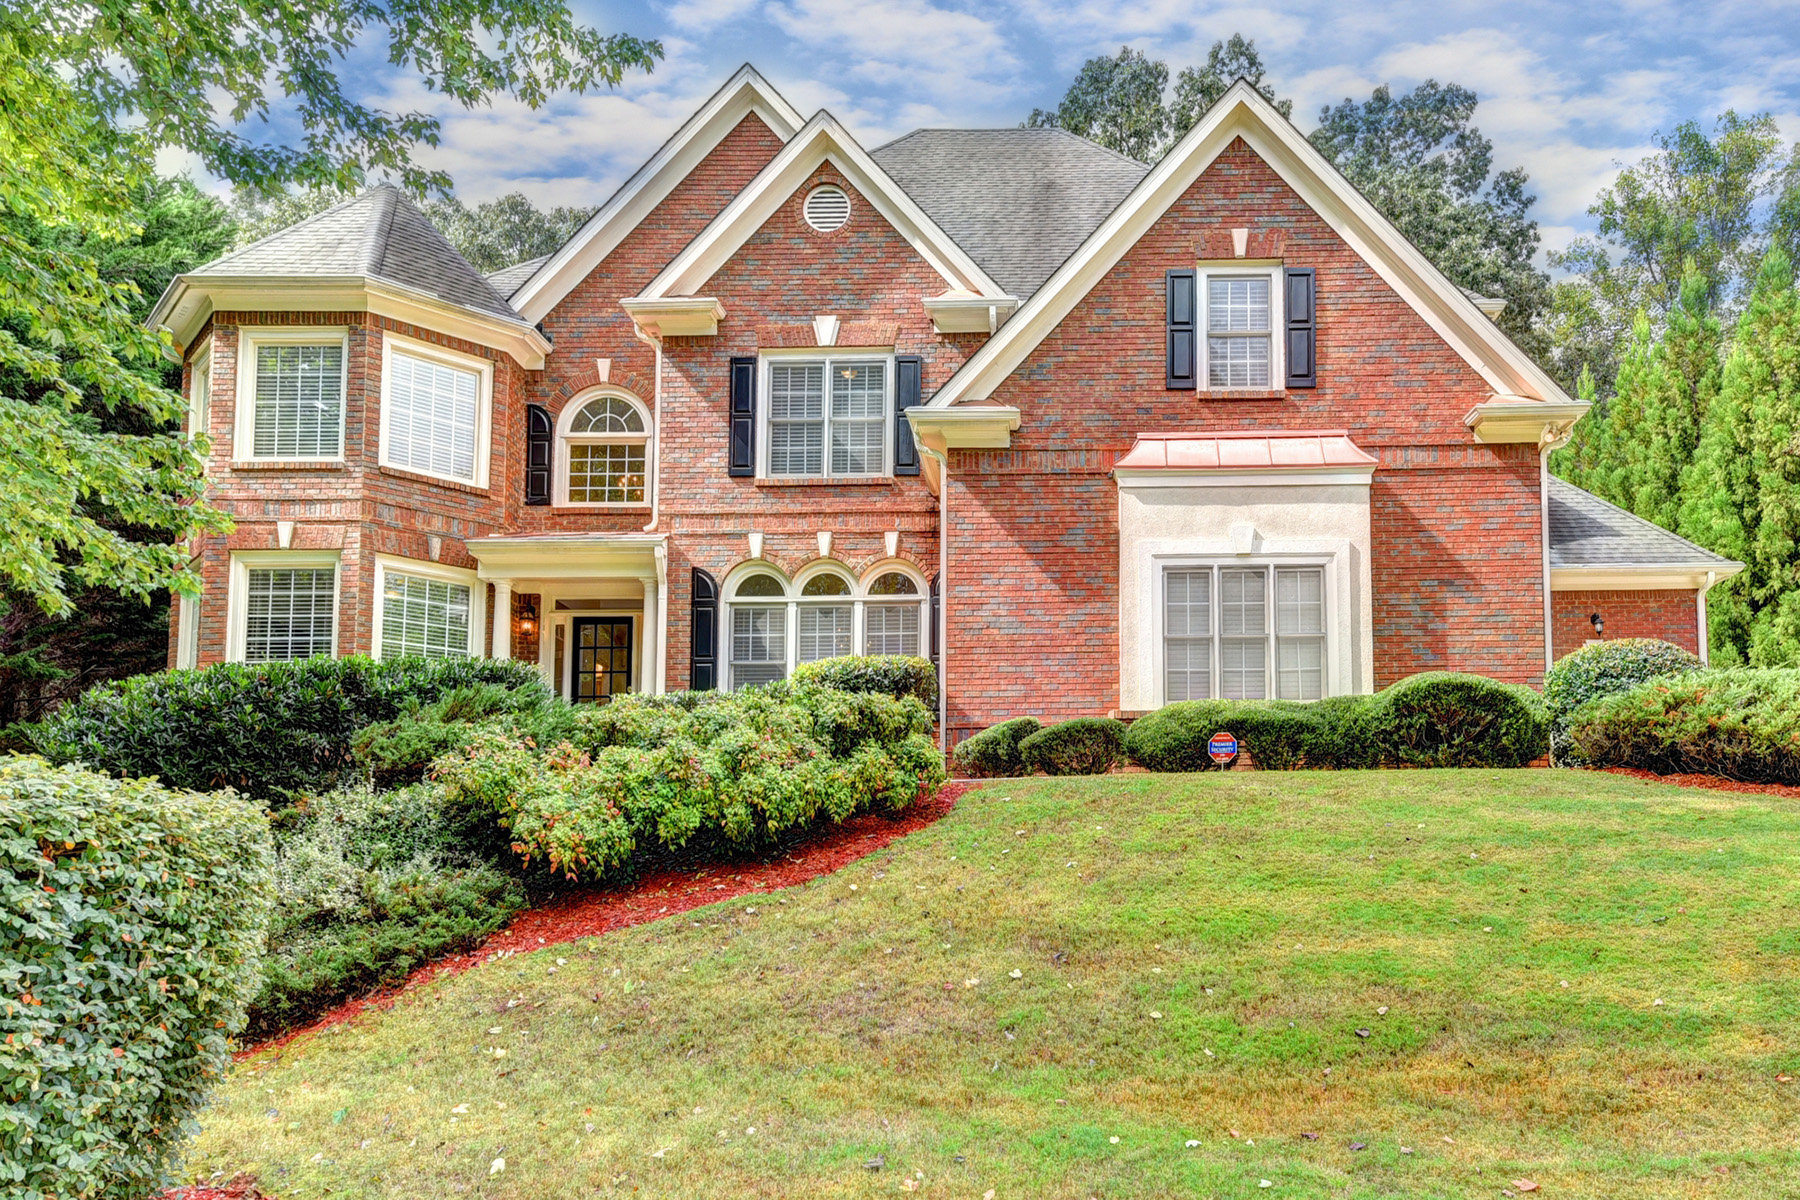 Single Family Home for Sale at Desirable Milton Home In Crooked Creek A Gated Golf Community On Fabulous Lot 230 Bunker Court Milton, Georgia 30004 United States